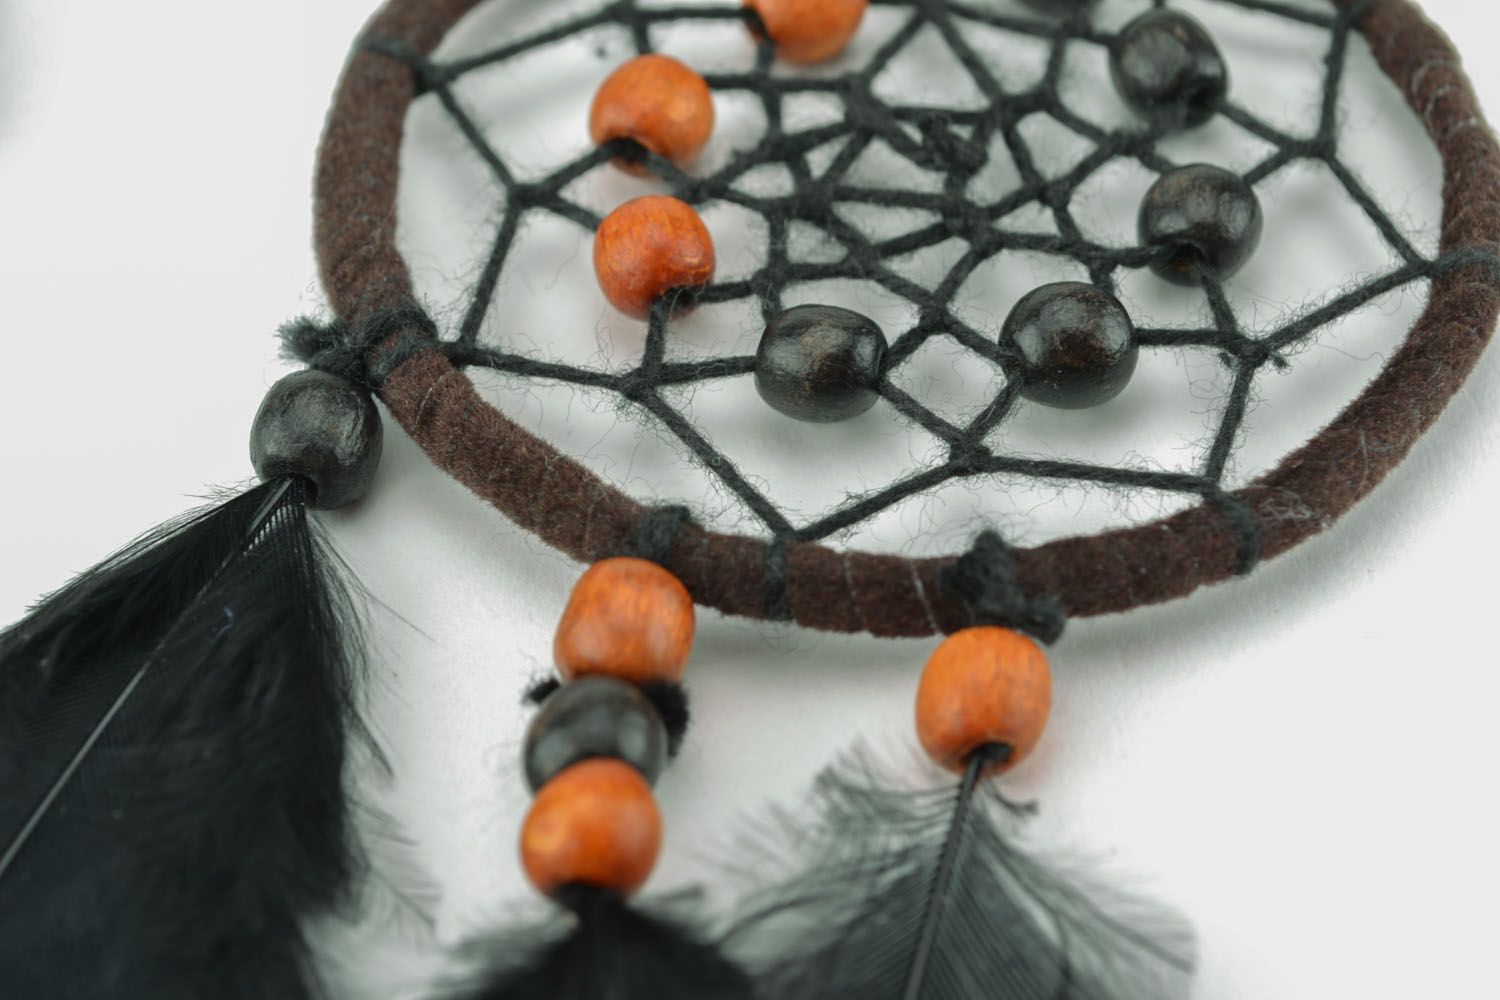 Homemade earrings in the shape of Dreamcatchers photo 3